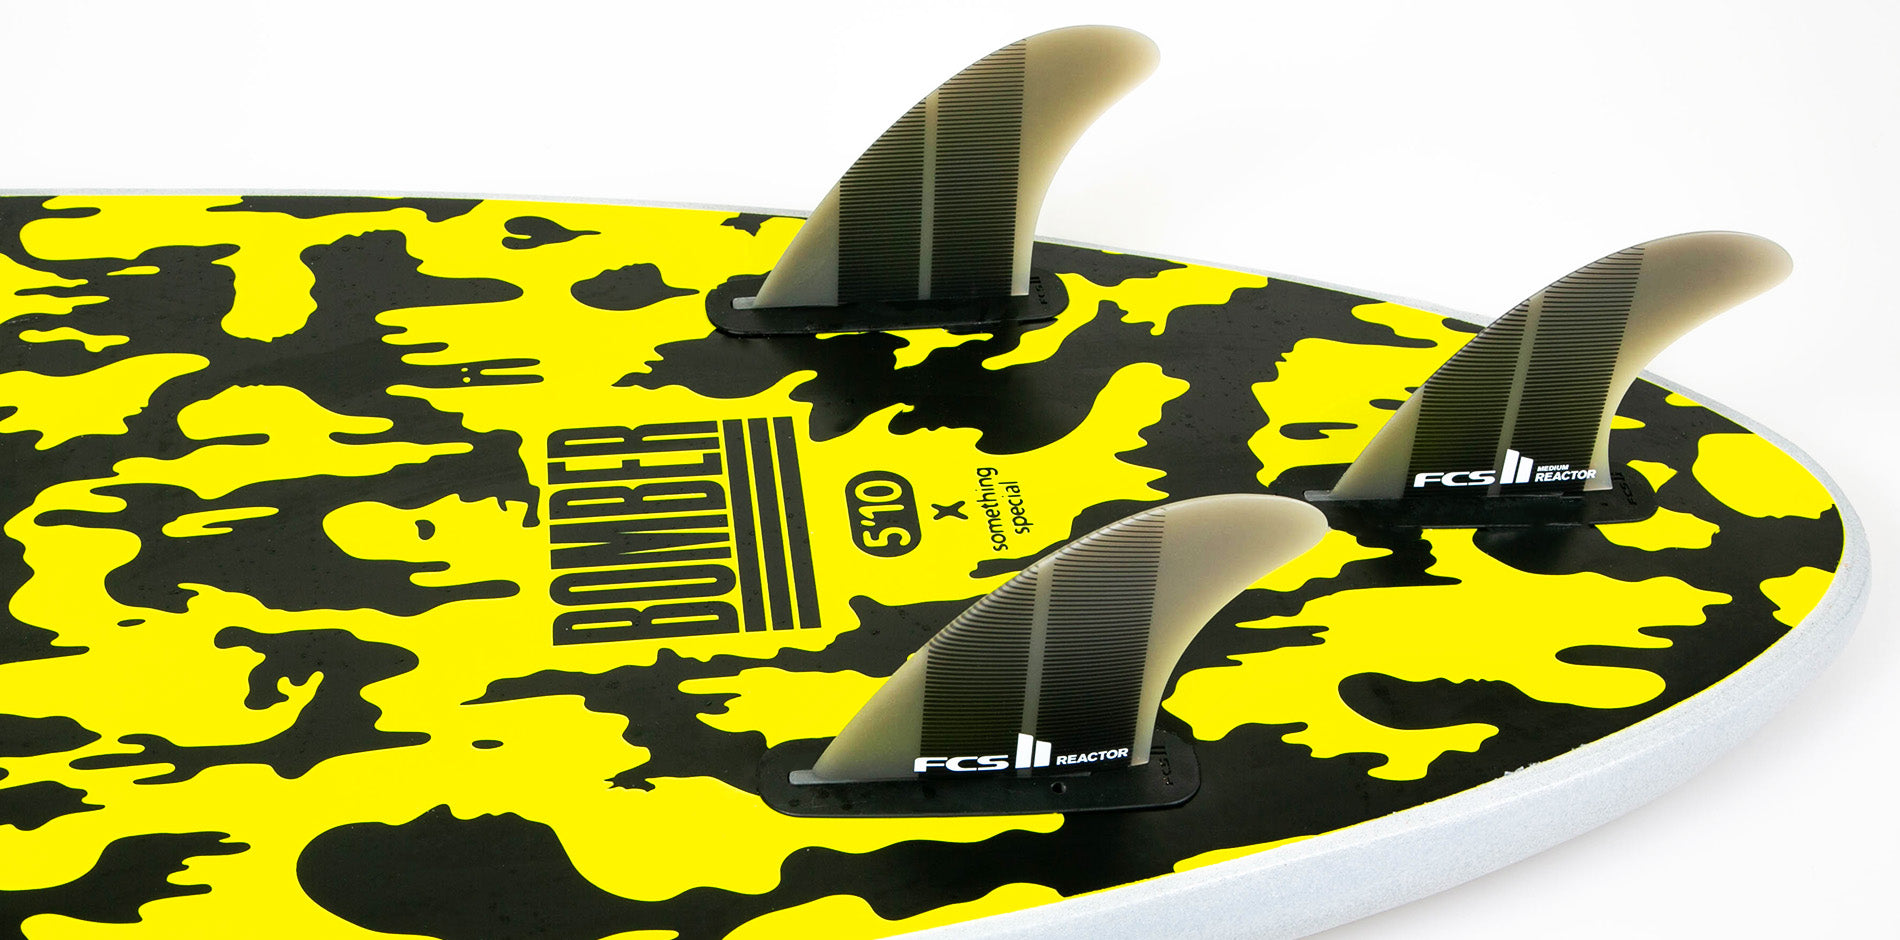 Softech Bomber Fins